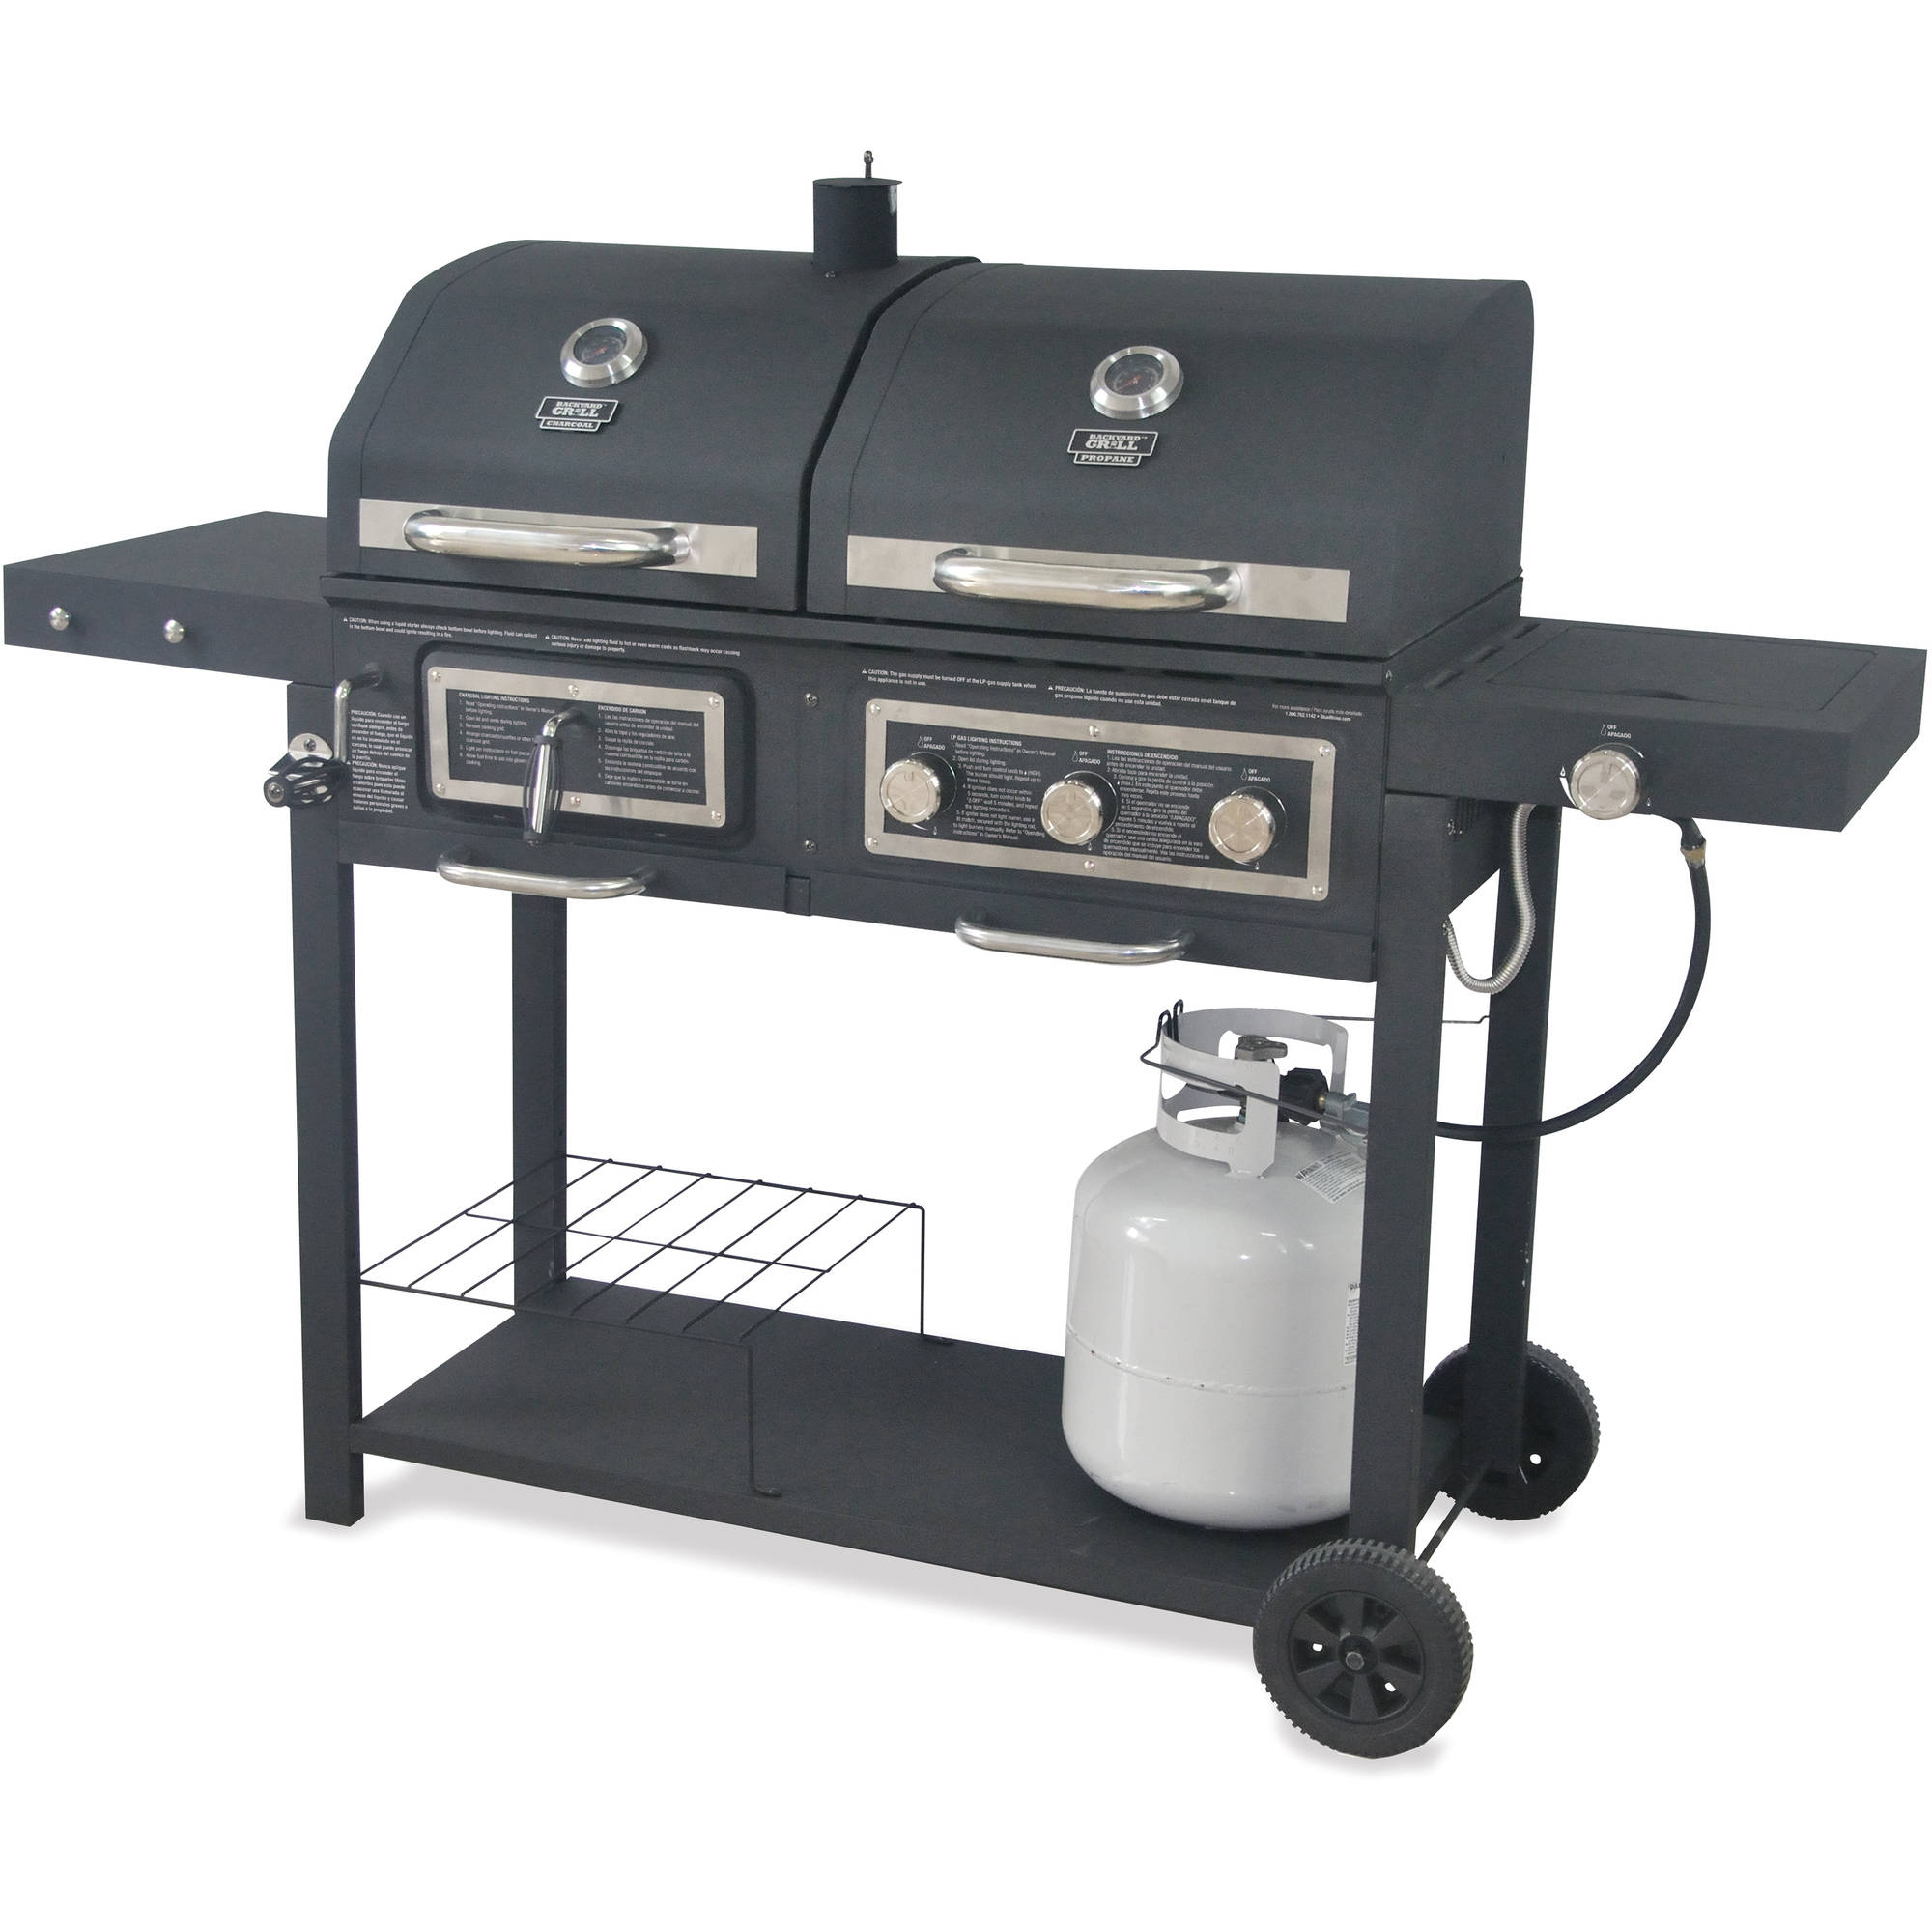 Backyard Grill Dual Gas/Charcoal Grill – Walmart Inventory ...